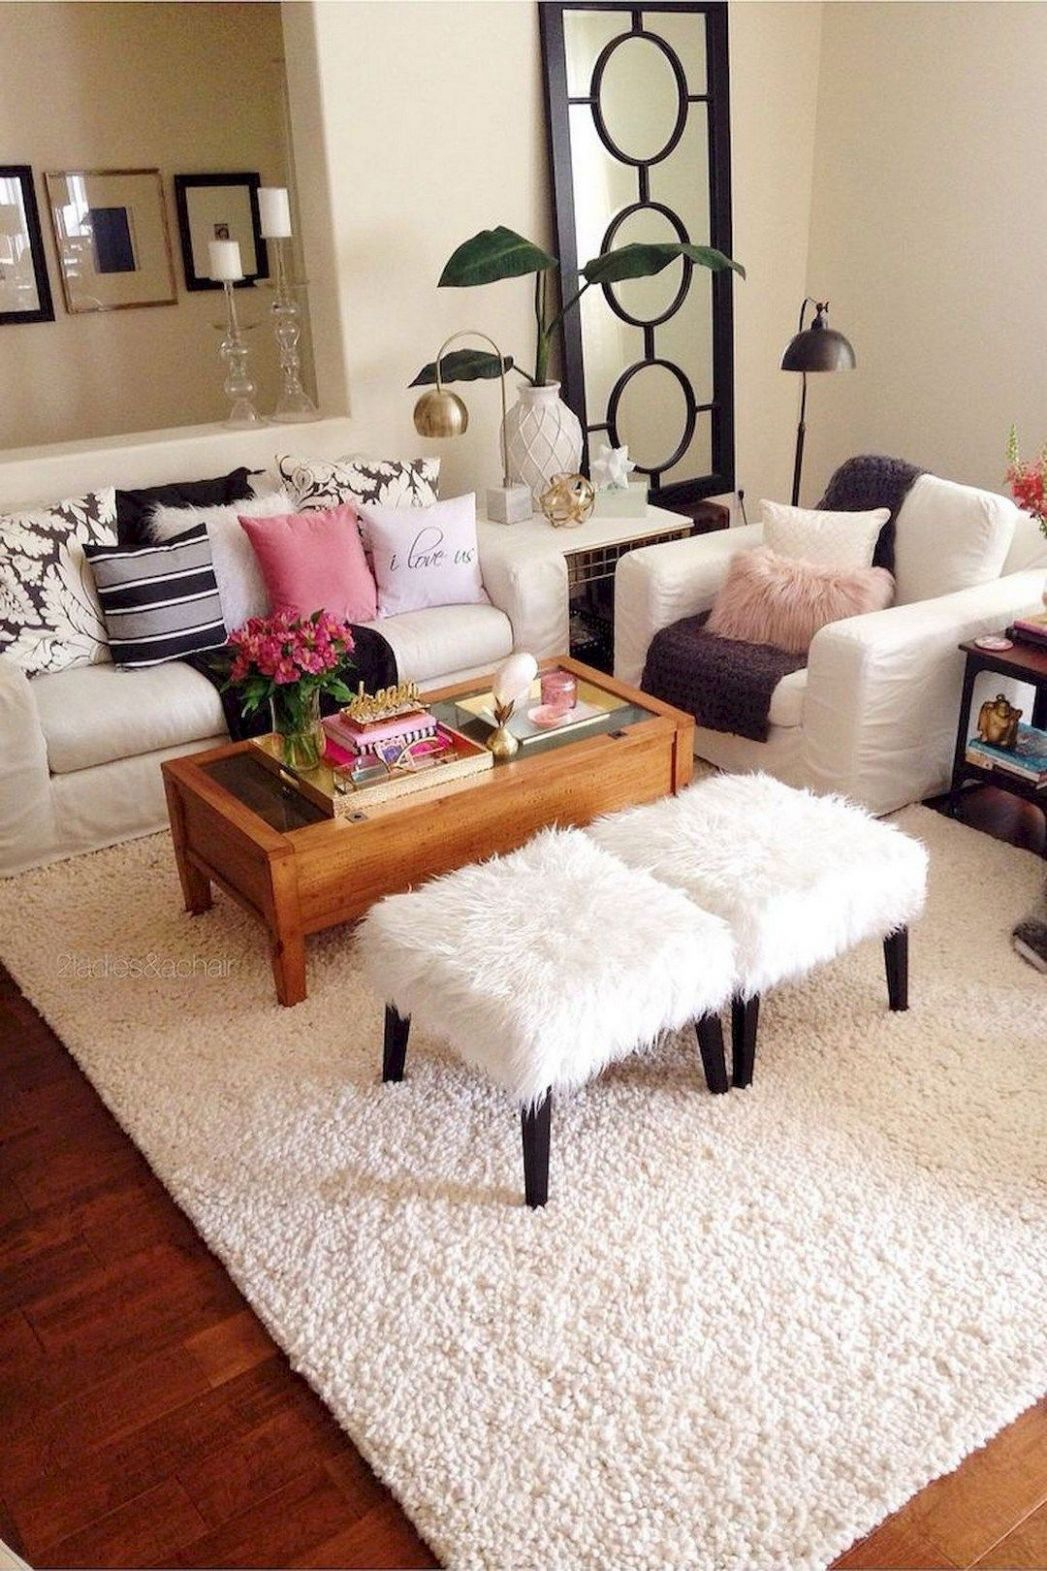 Cozy Small Apartment Decorating Ideas On A Budget | First ..